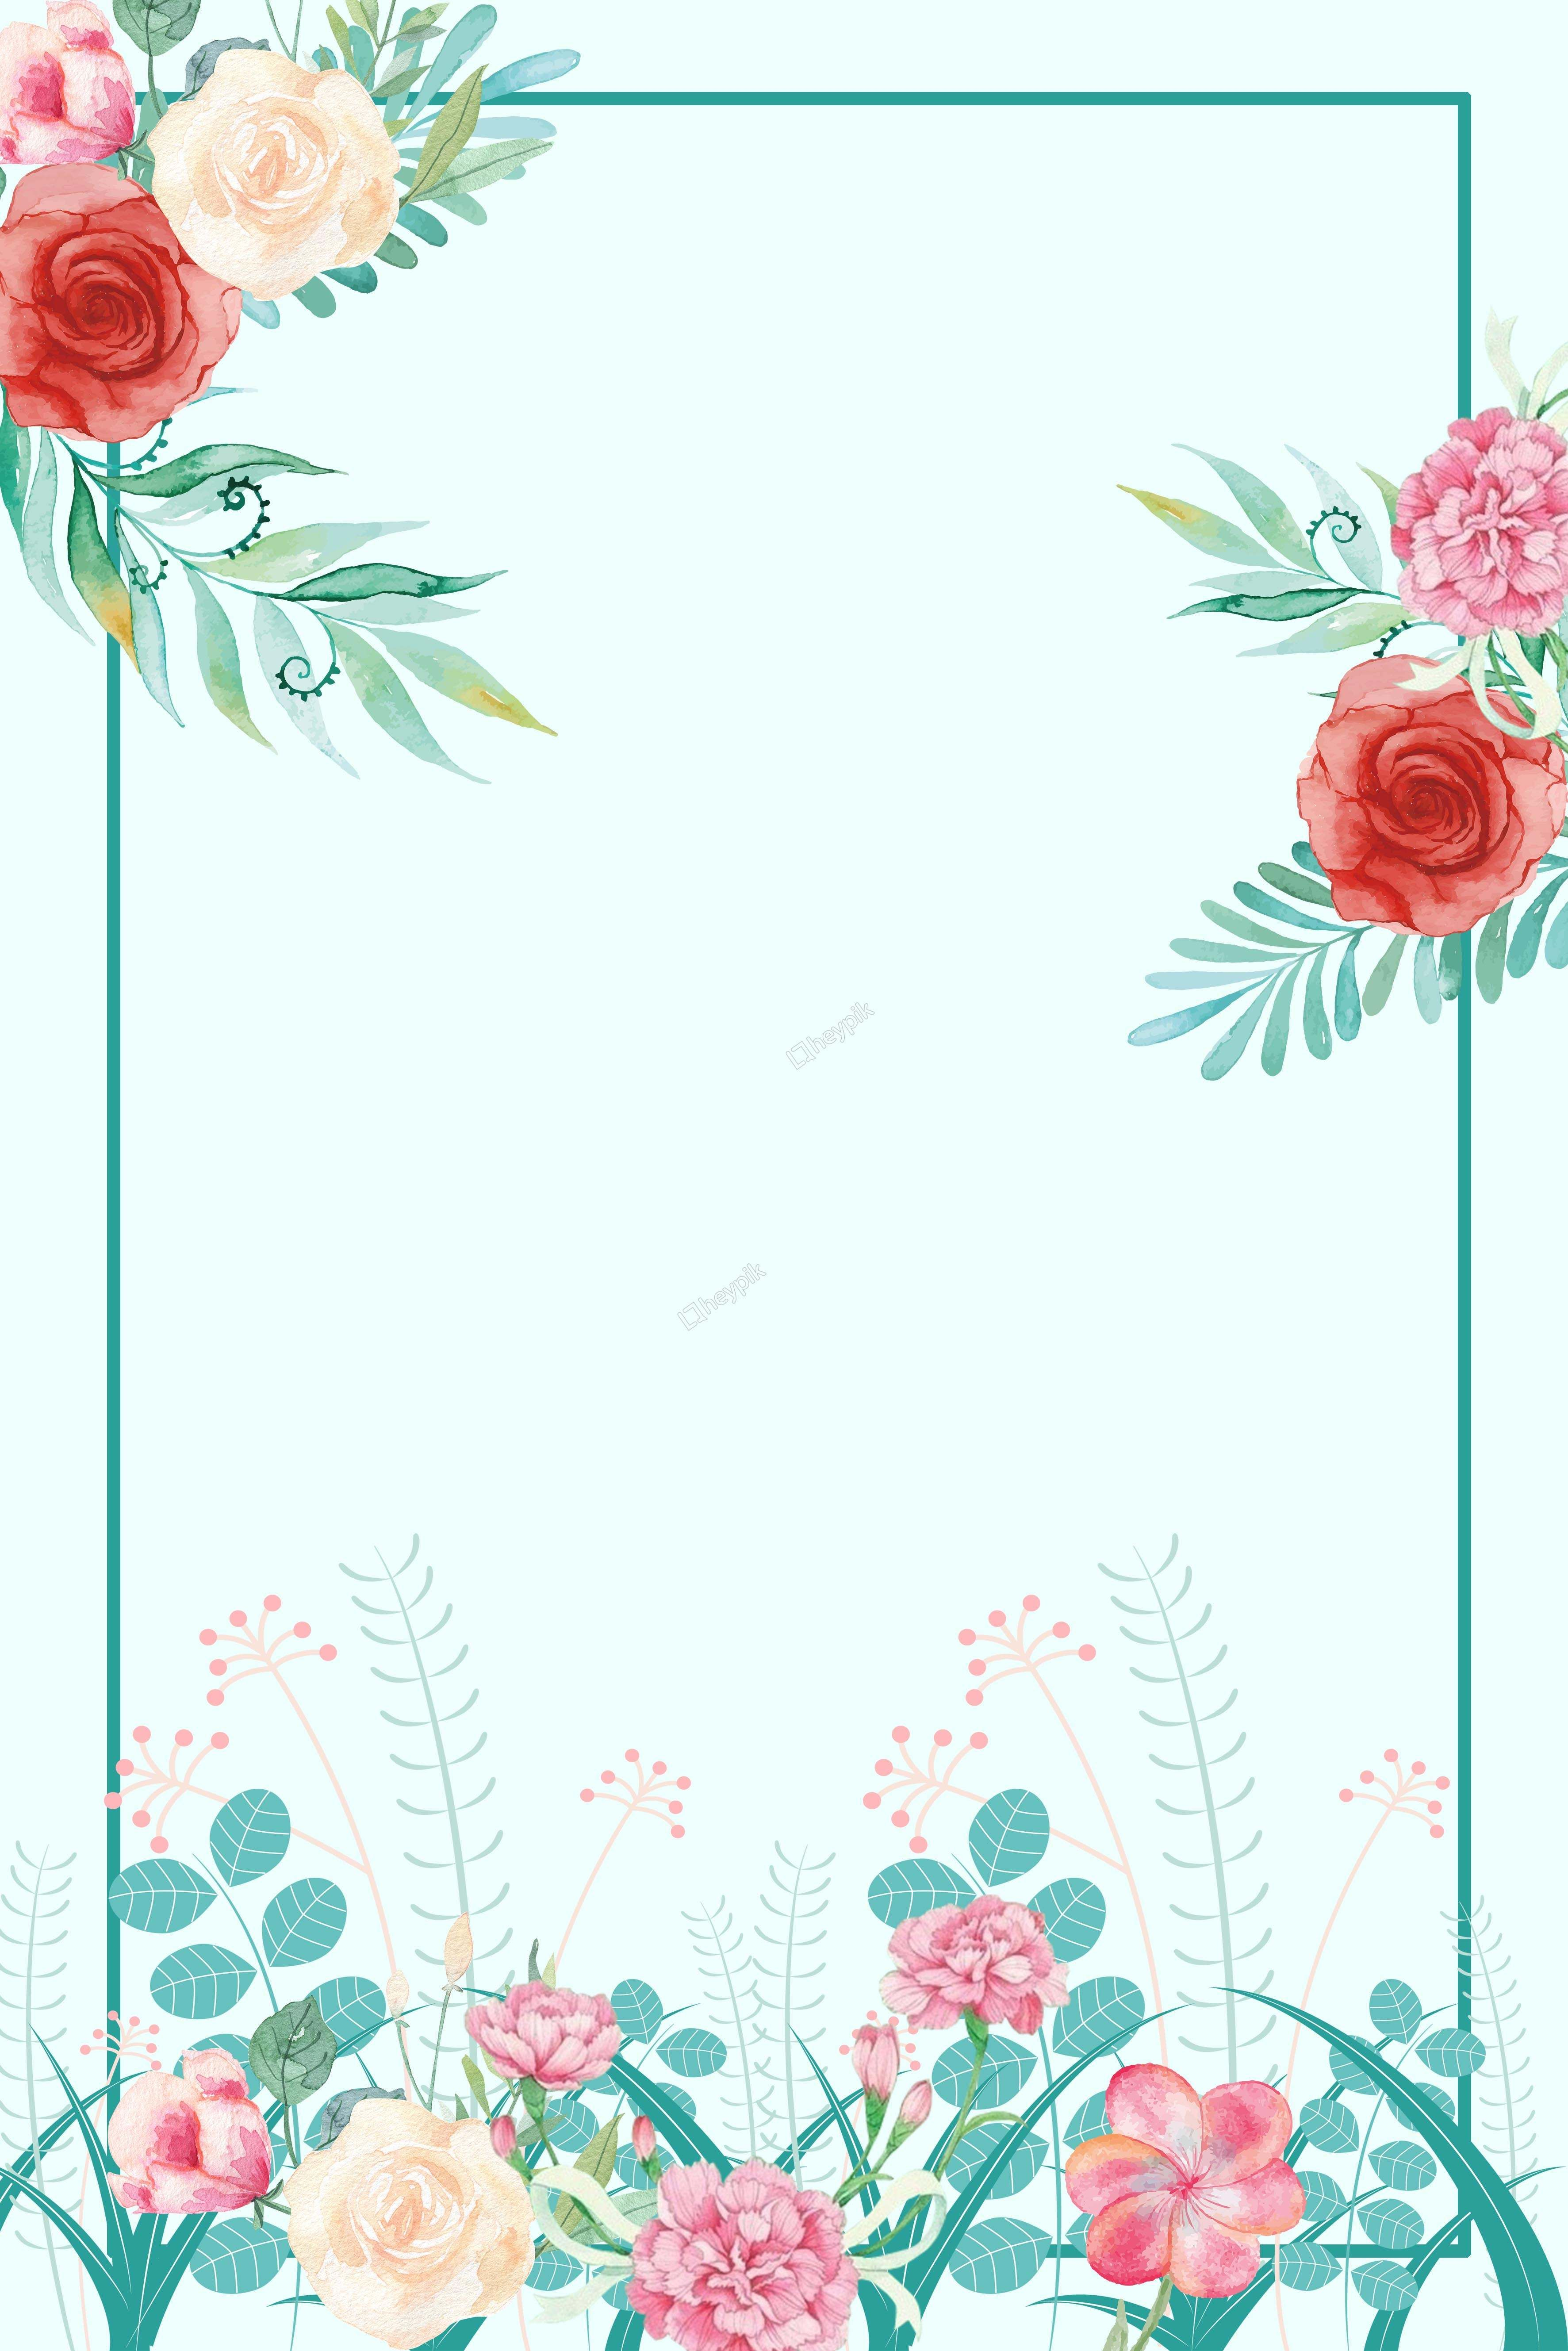 fresh plant flowers border background.